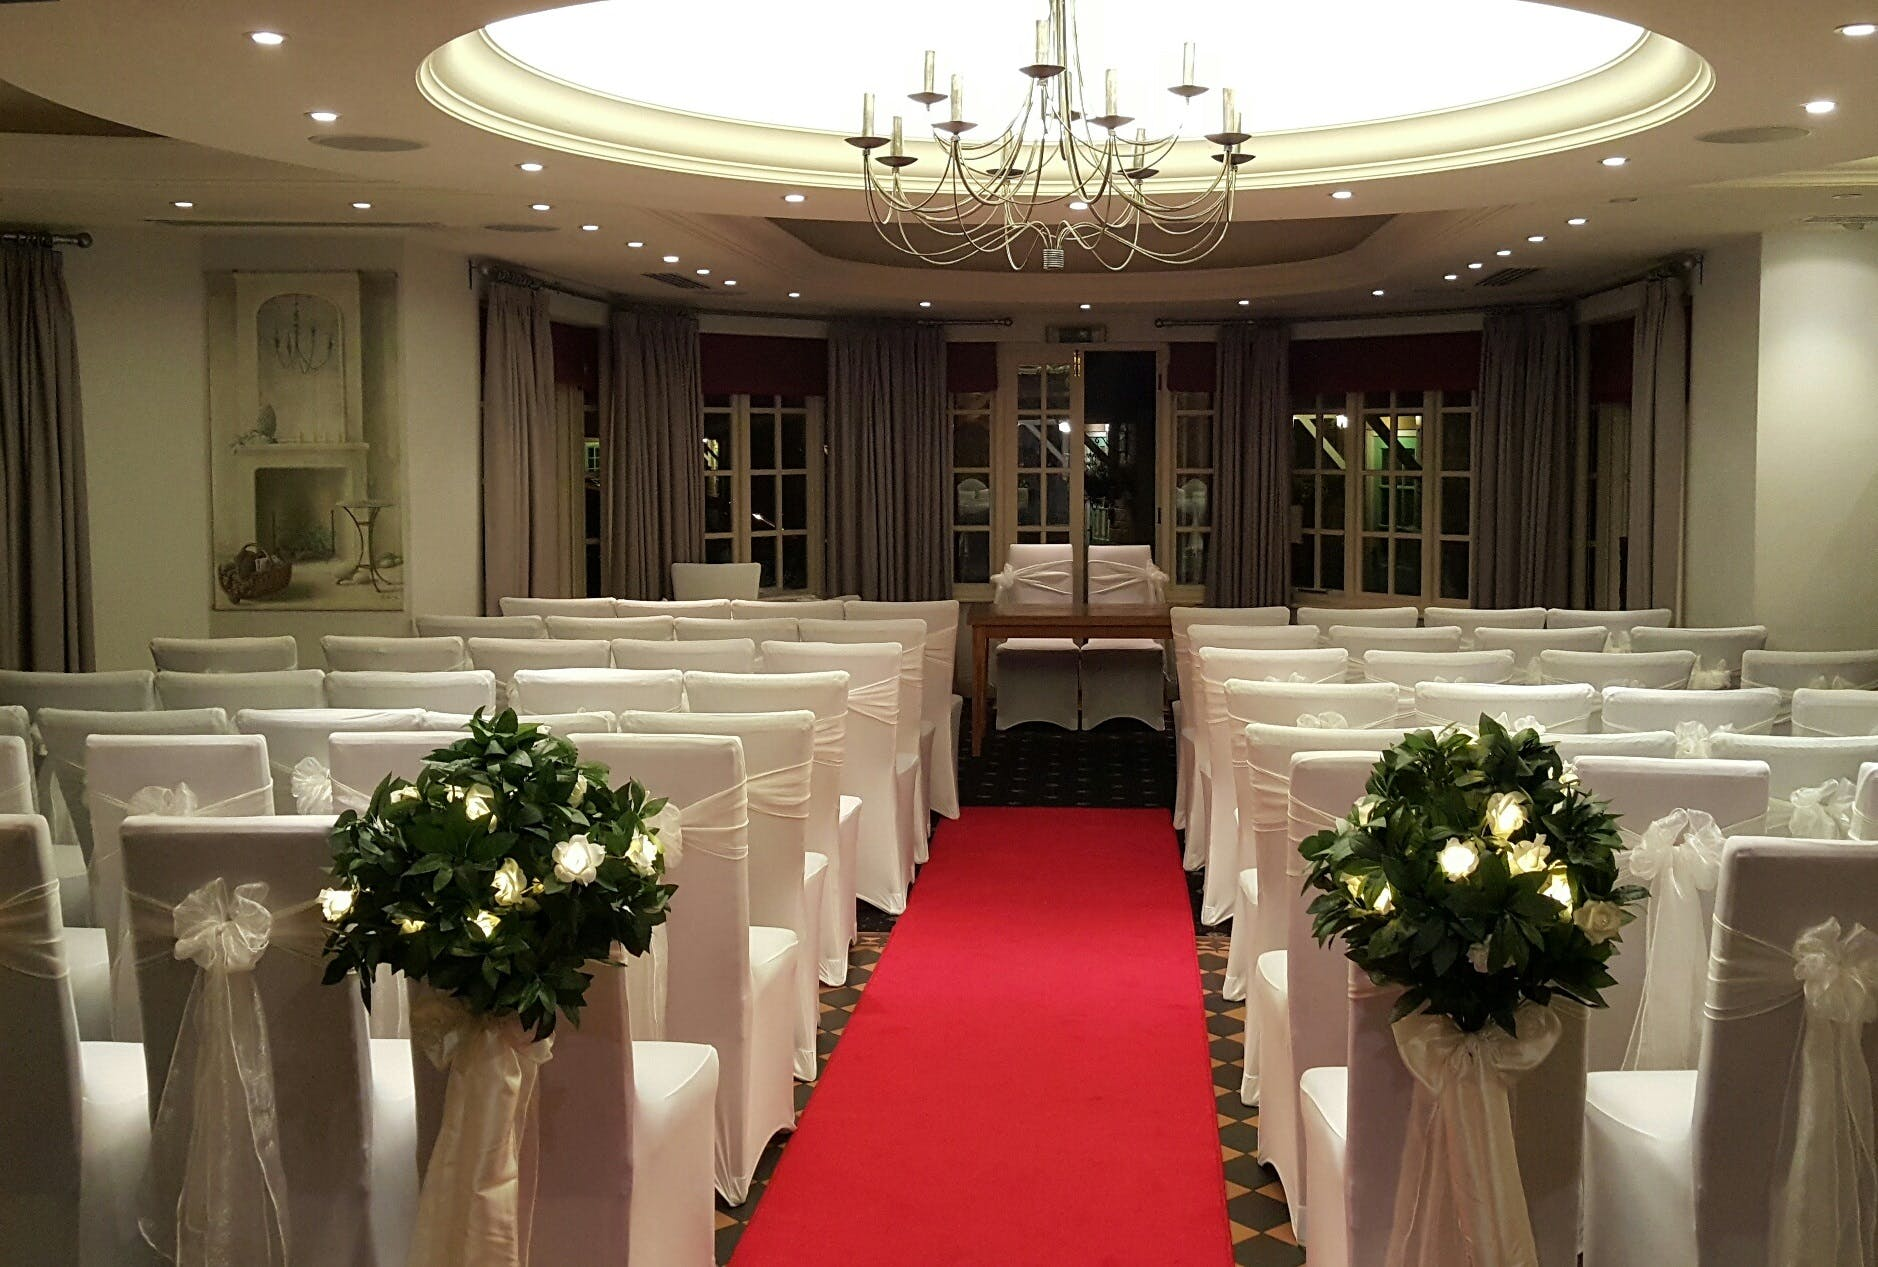 Garden Room ready for Wedding Ceremony